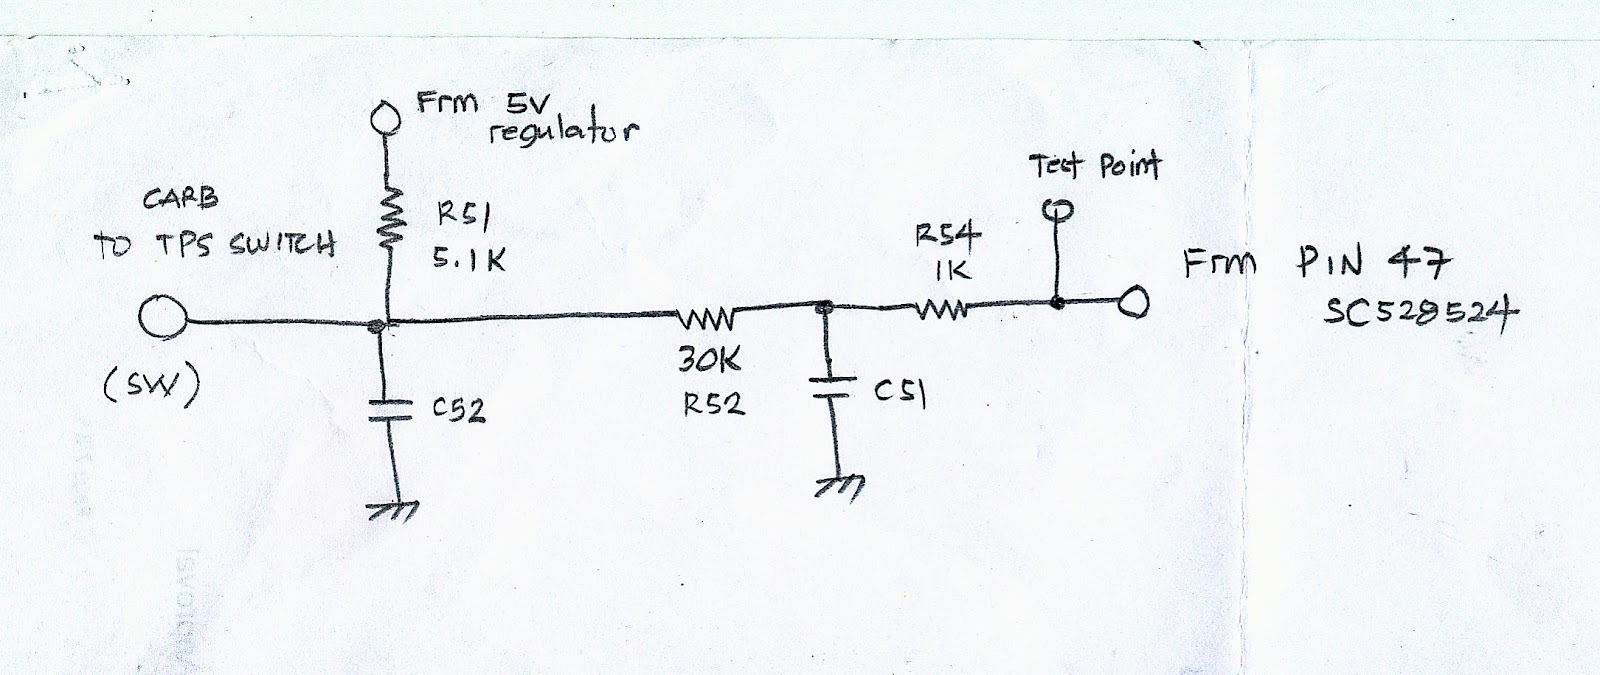 shogun dc cdi schematic techy at day blogger at noon and a scr and hv oscillator trigger